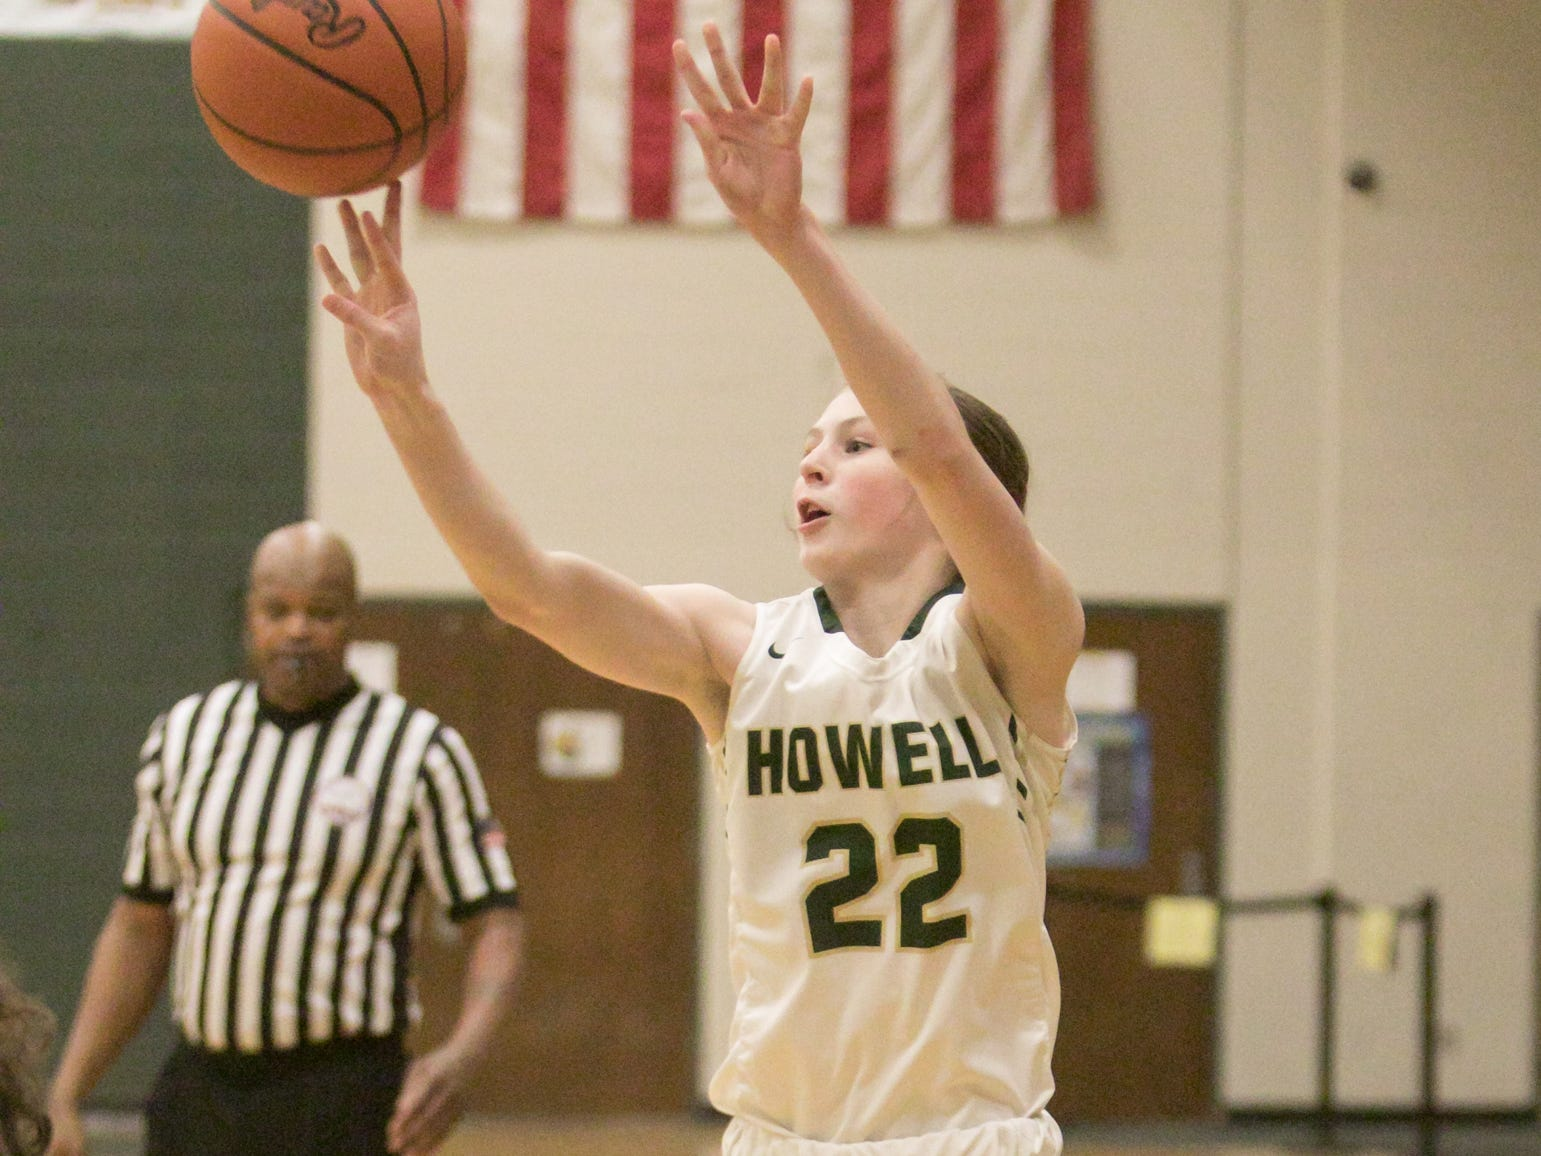 Maeve St. John of Howell puts up a shot in a 48-17 victory over Salem on Tuesday, Feb. 5, 2019.